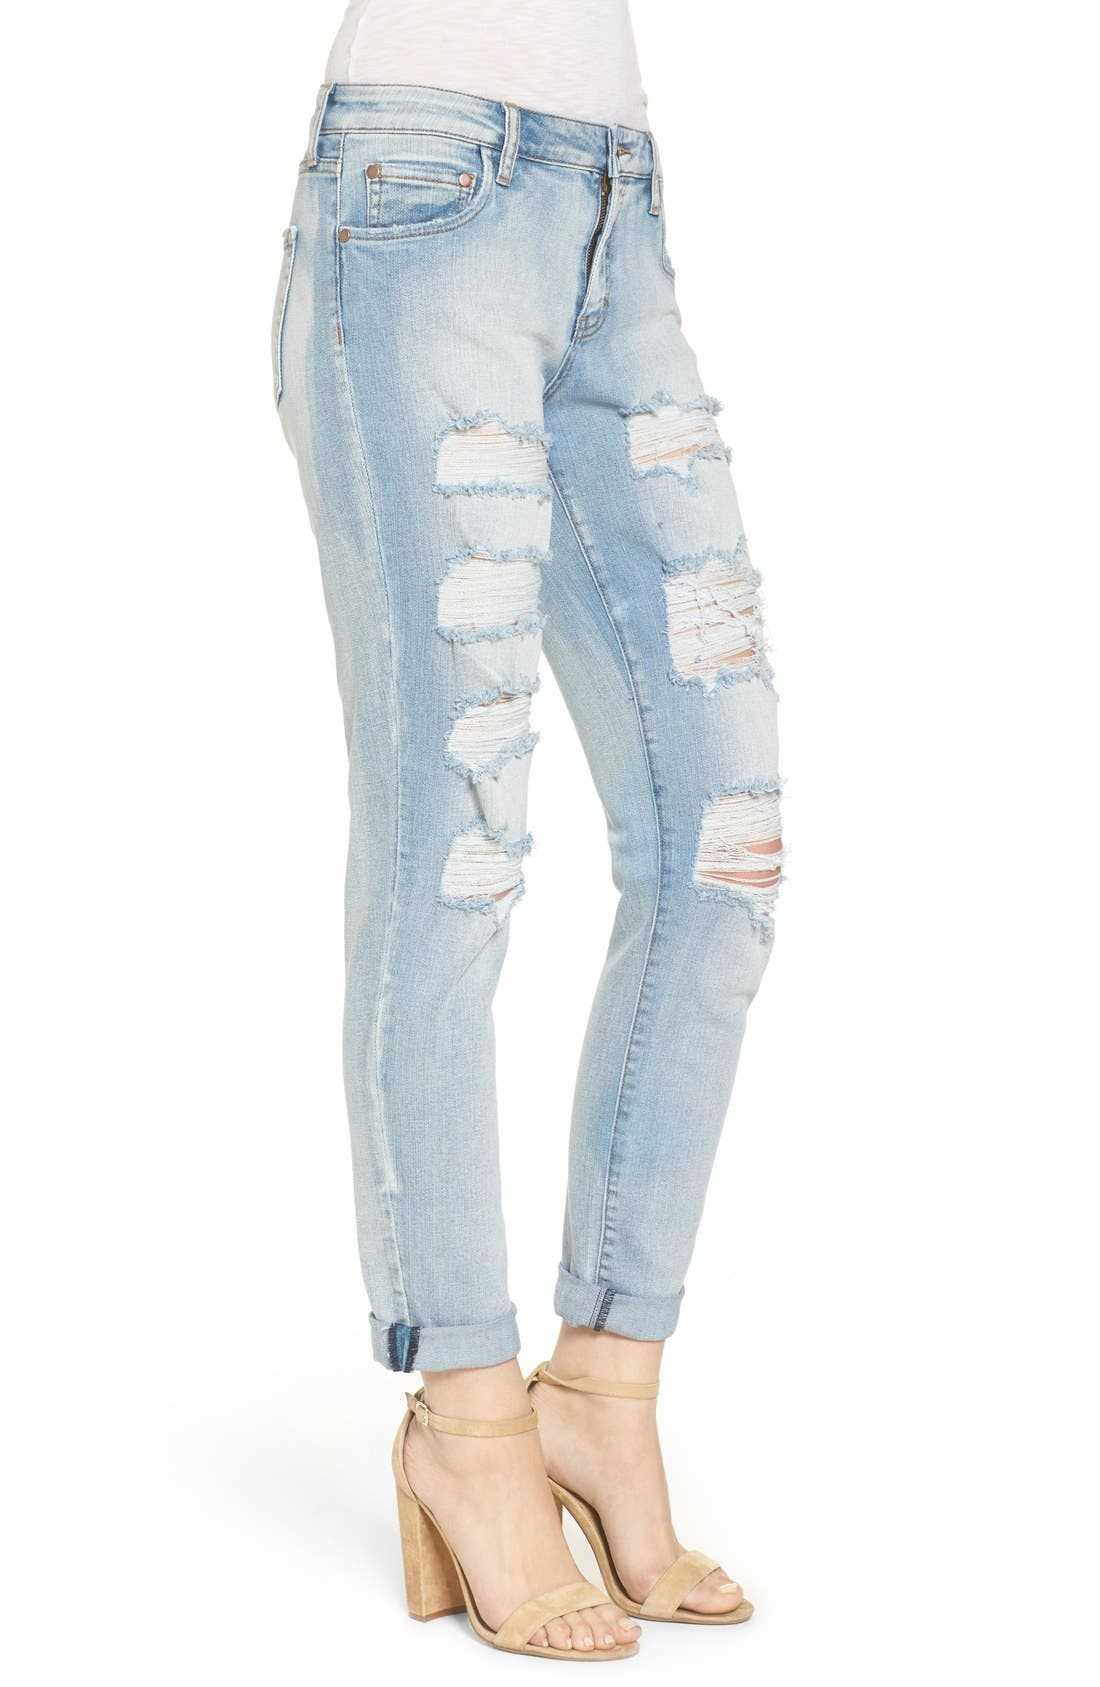 Ripped Skinny Boyfriend Jeans,                             Alternate thumbnail 8, color,                             421